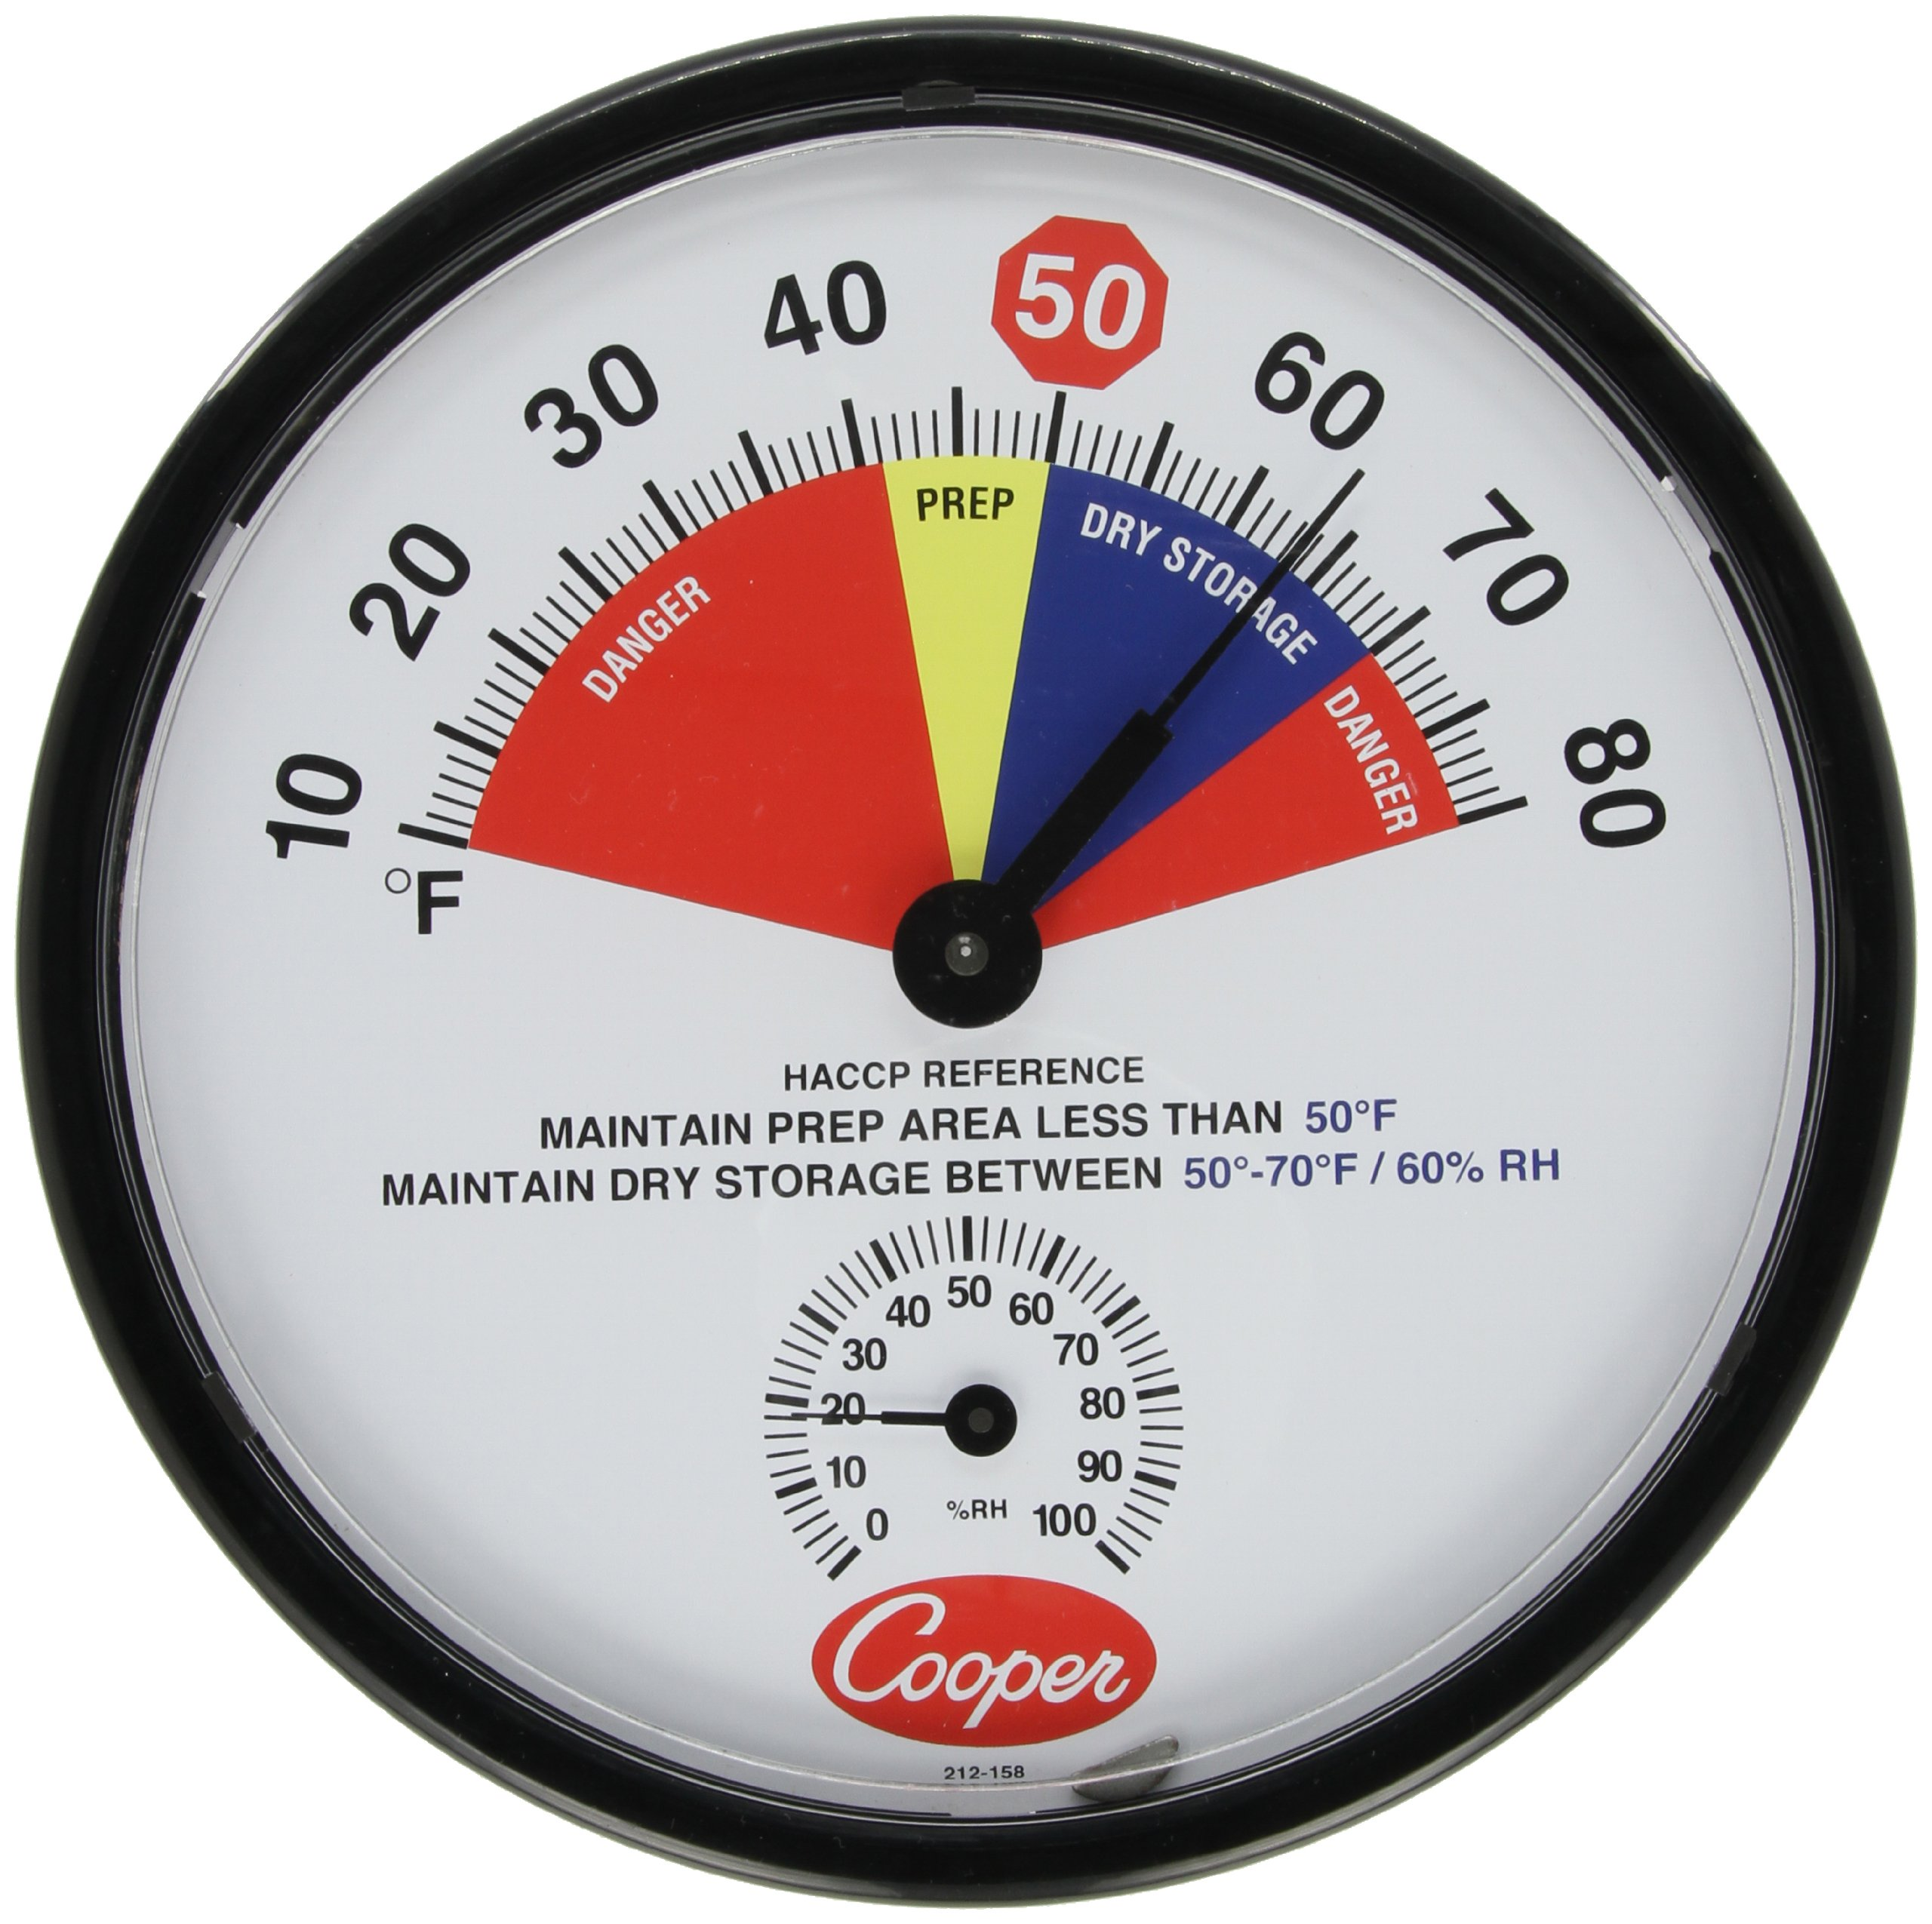 Cooper-Atkins 212-158-8 Bi-Metals Dry Storage/Prep Area Wall Thermometer, 10 to 80 Degrees F Temperature Range by Cooper